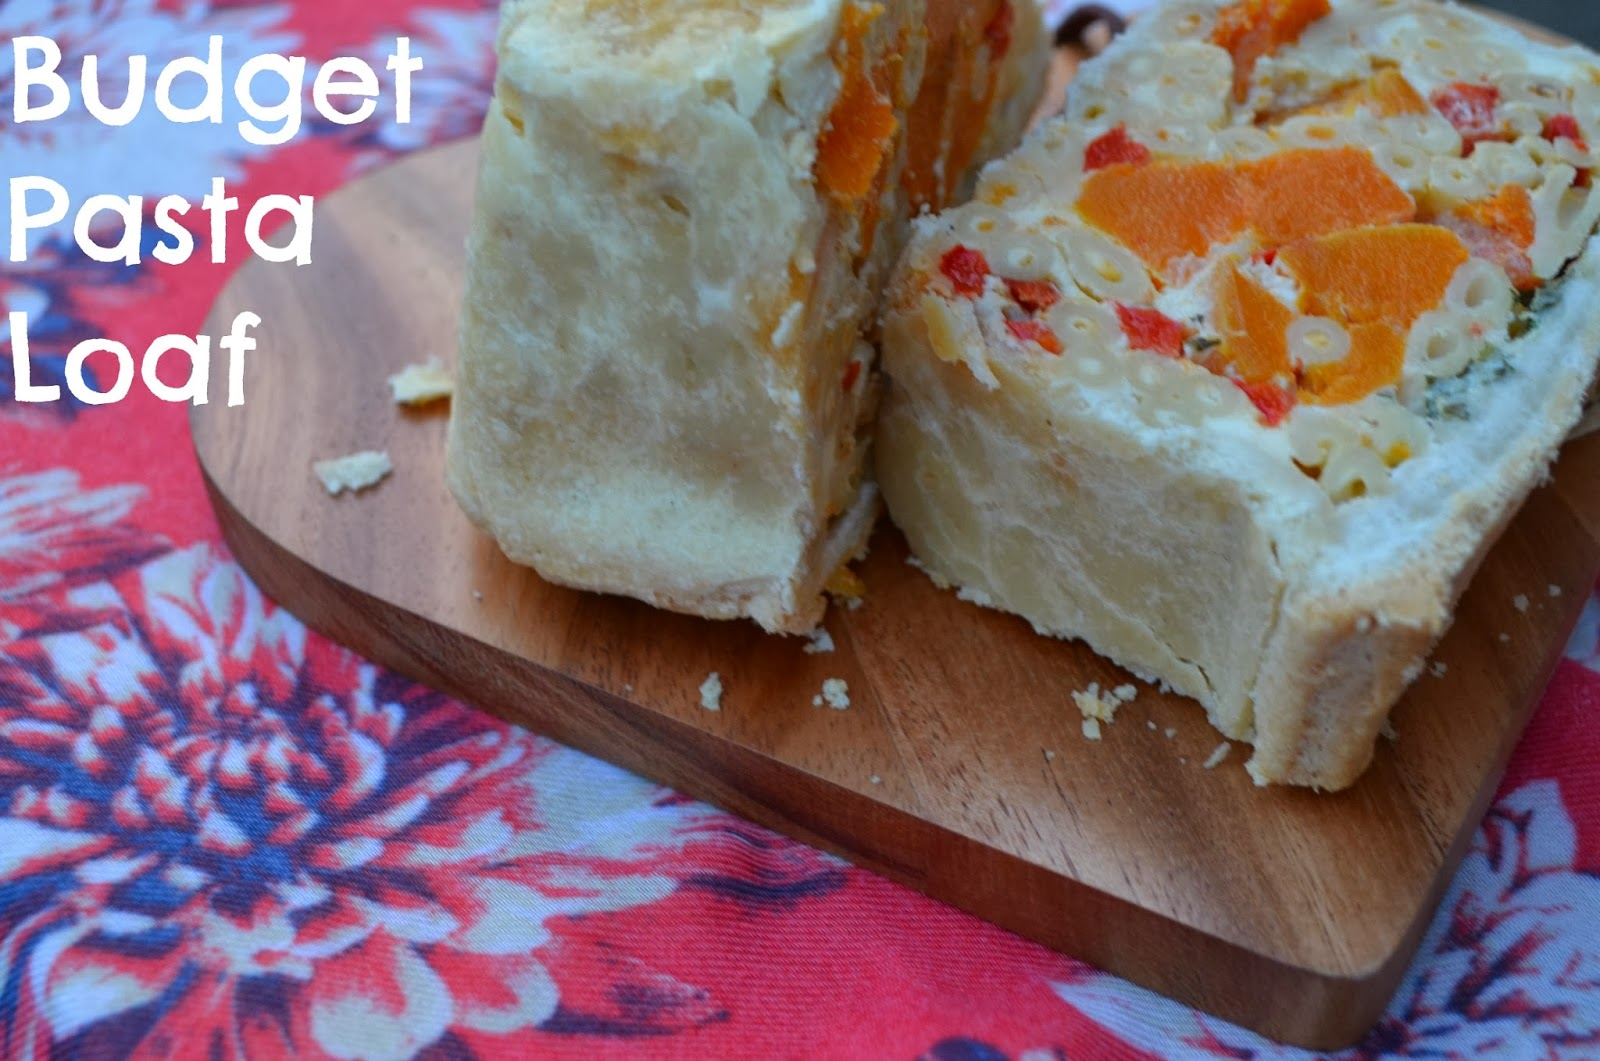 pasta loaf, budget recipe, pasta and pastry, cbias, social fabric